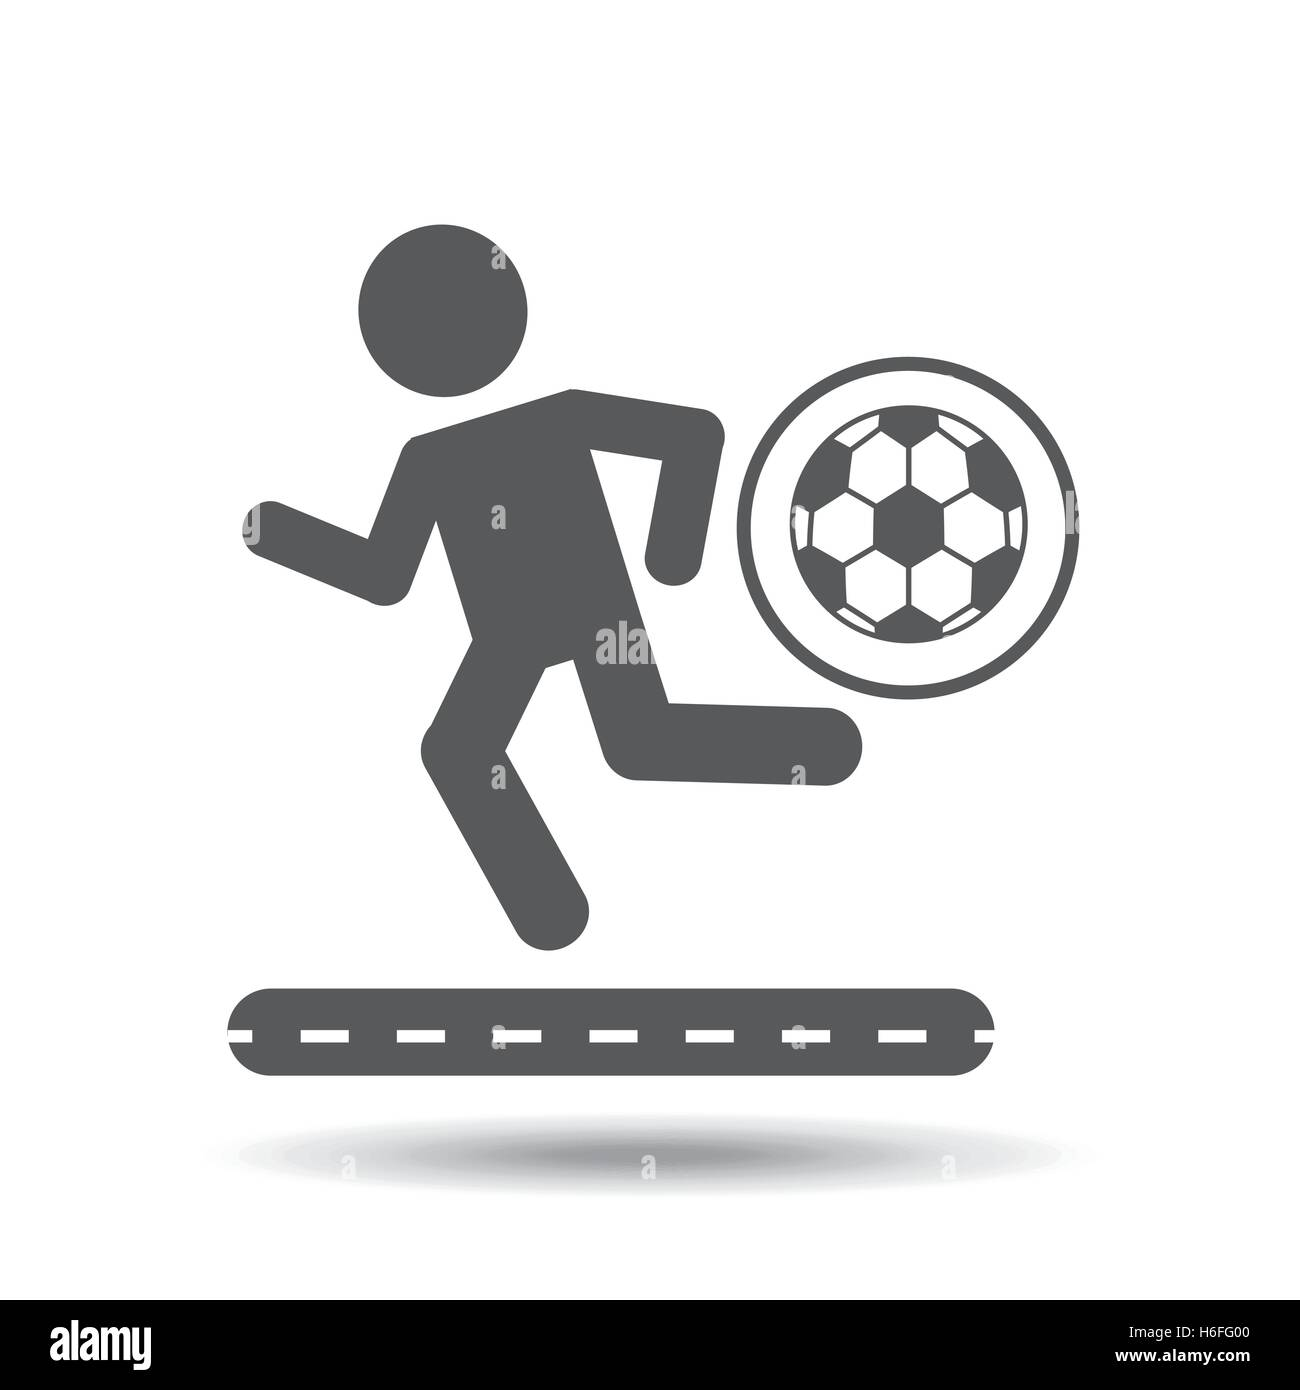 man silhouette running with ball soccer icon vector illustration eps 10 - Stock Vector